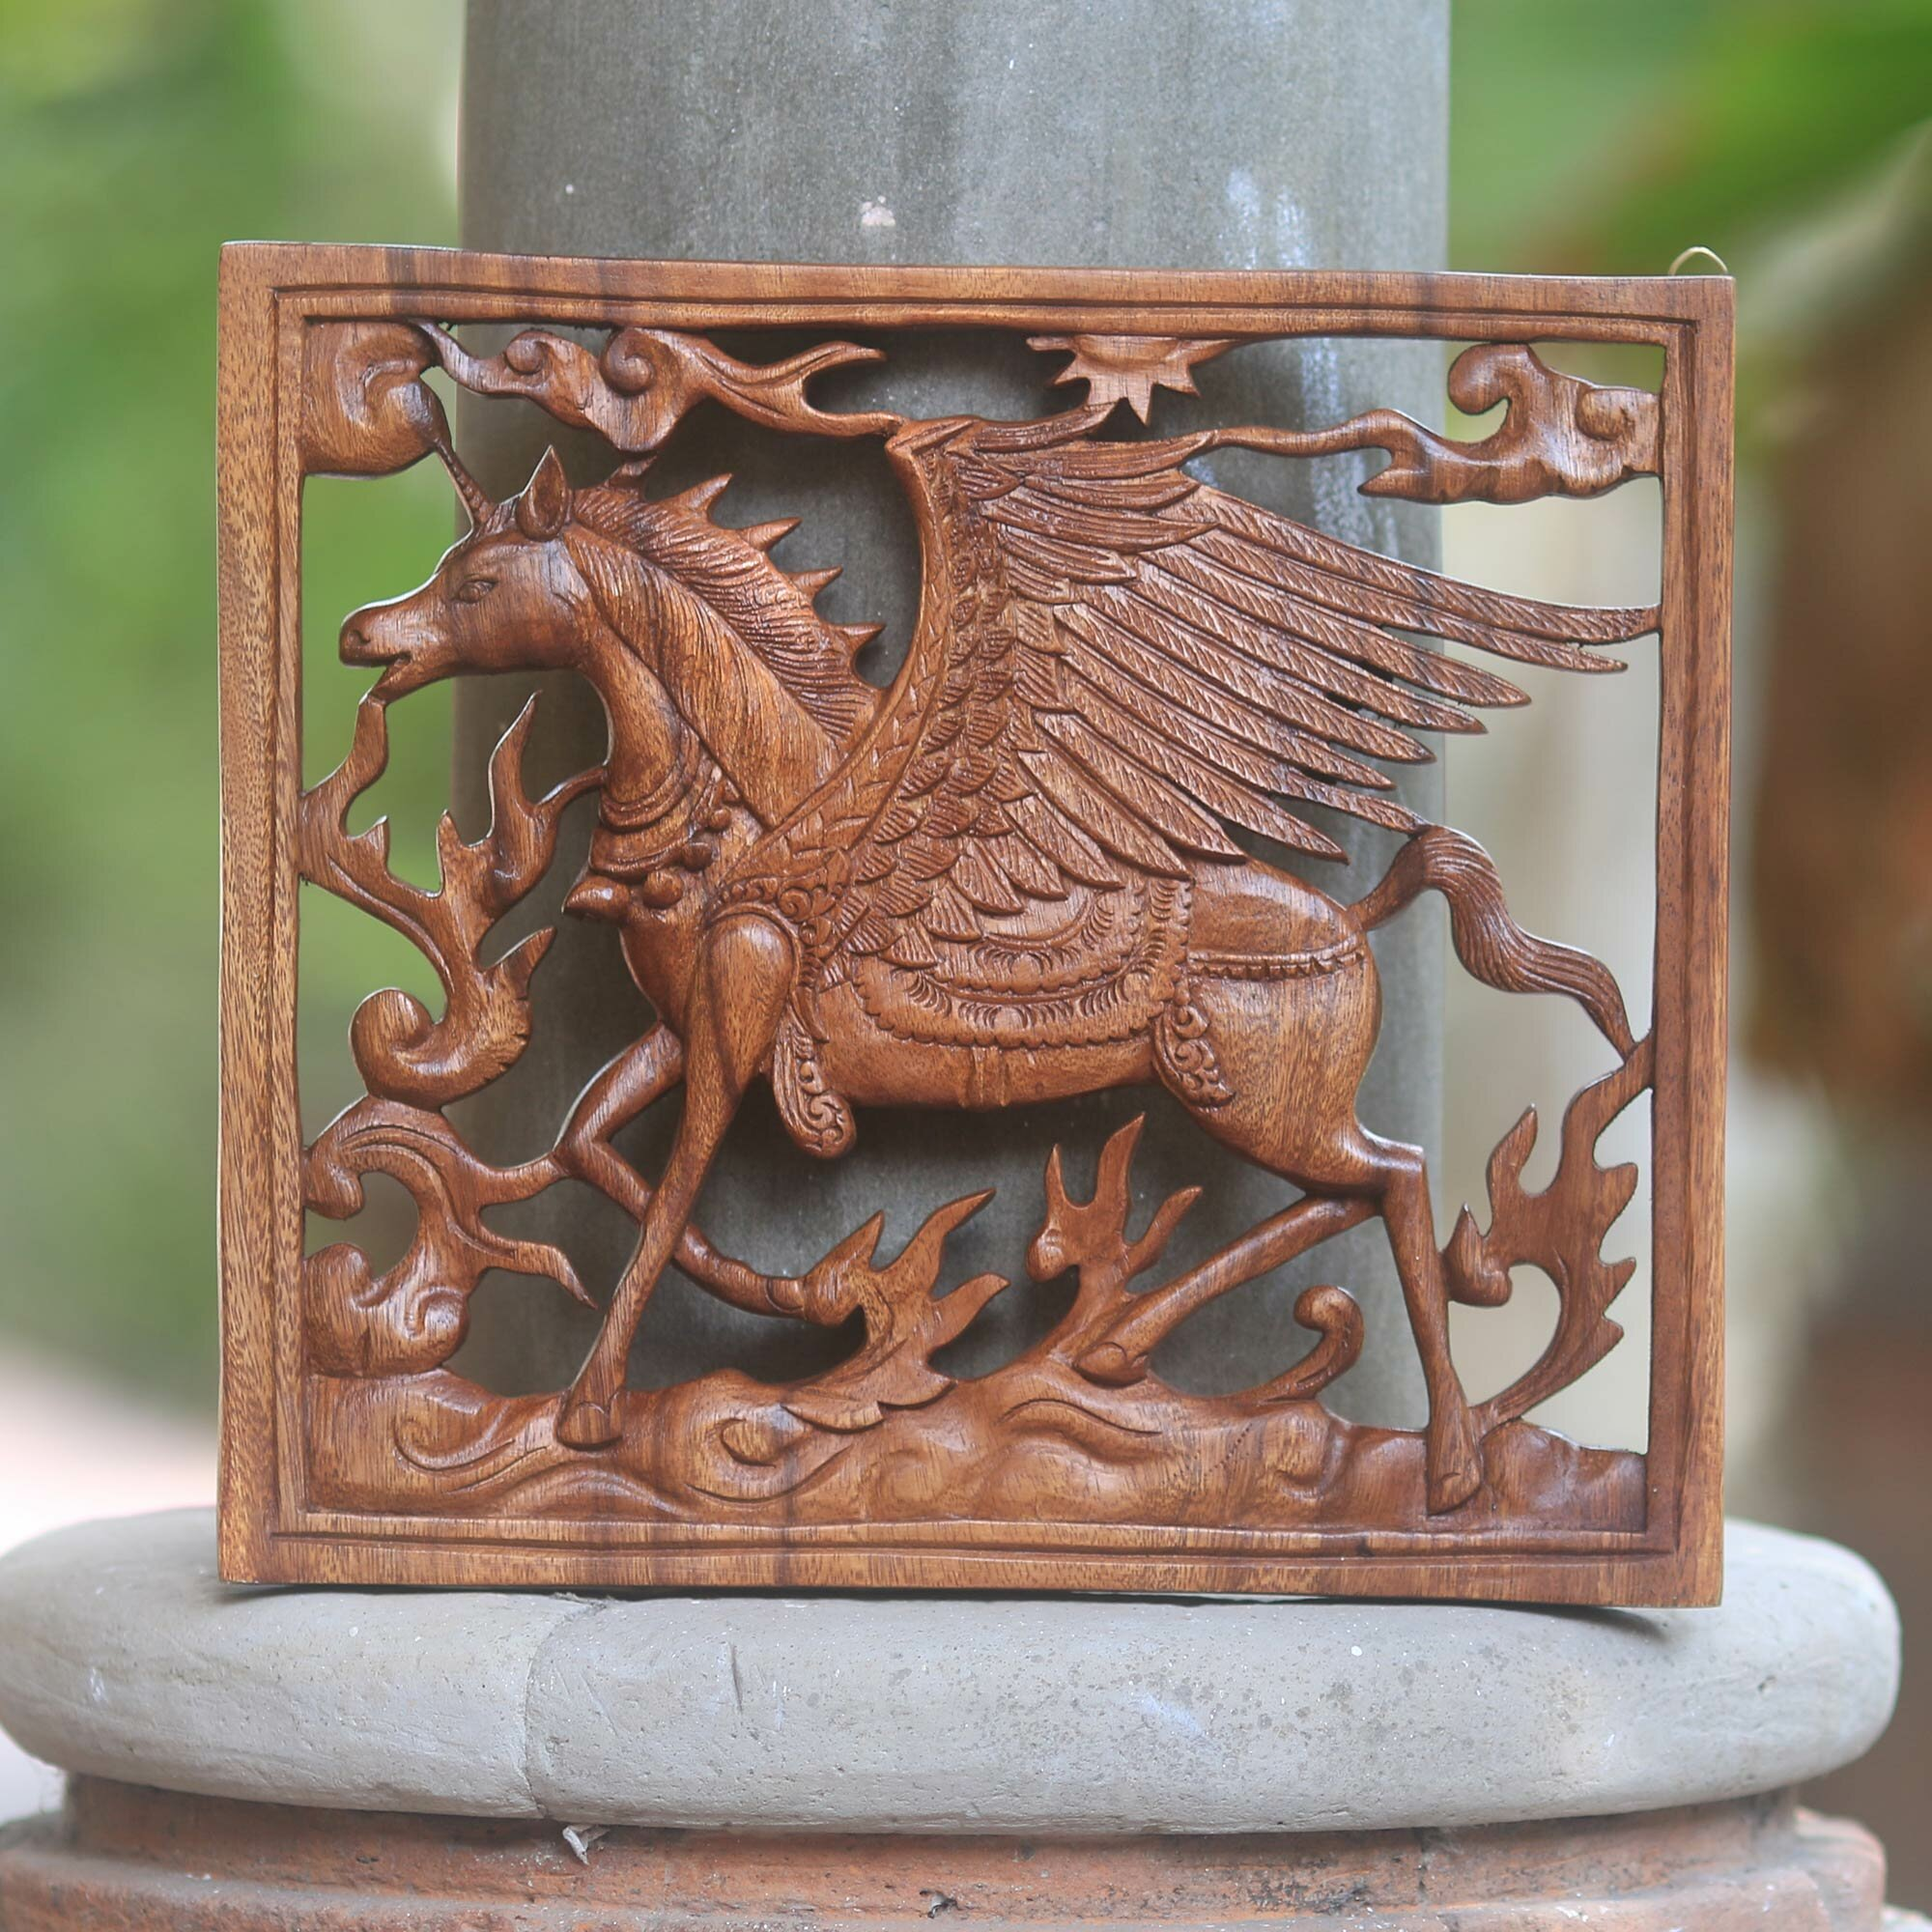 World Menagerie Pegasus Square Wood Wall Panel With Pegasus Design For The Home Wall Décor Wayfair